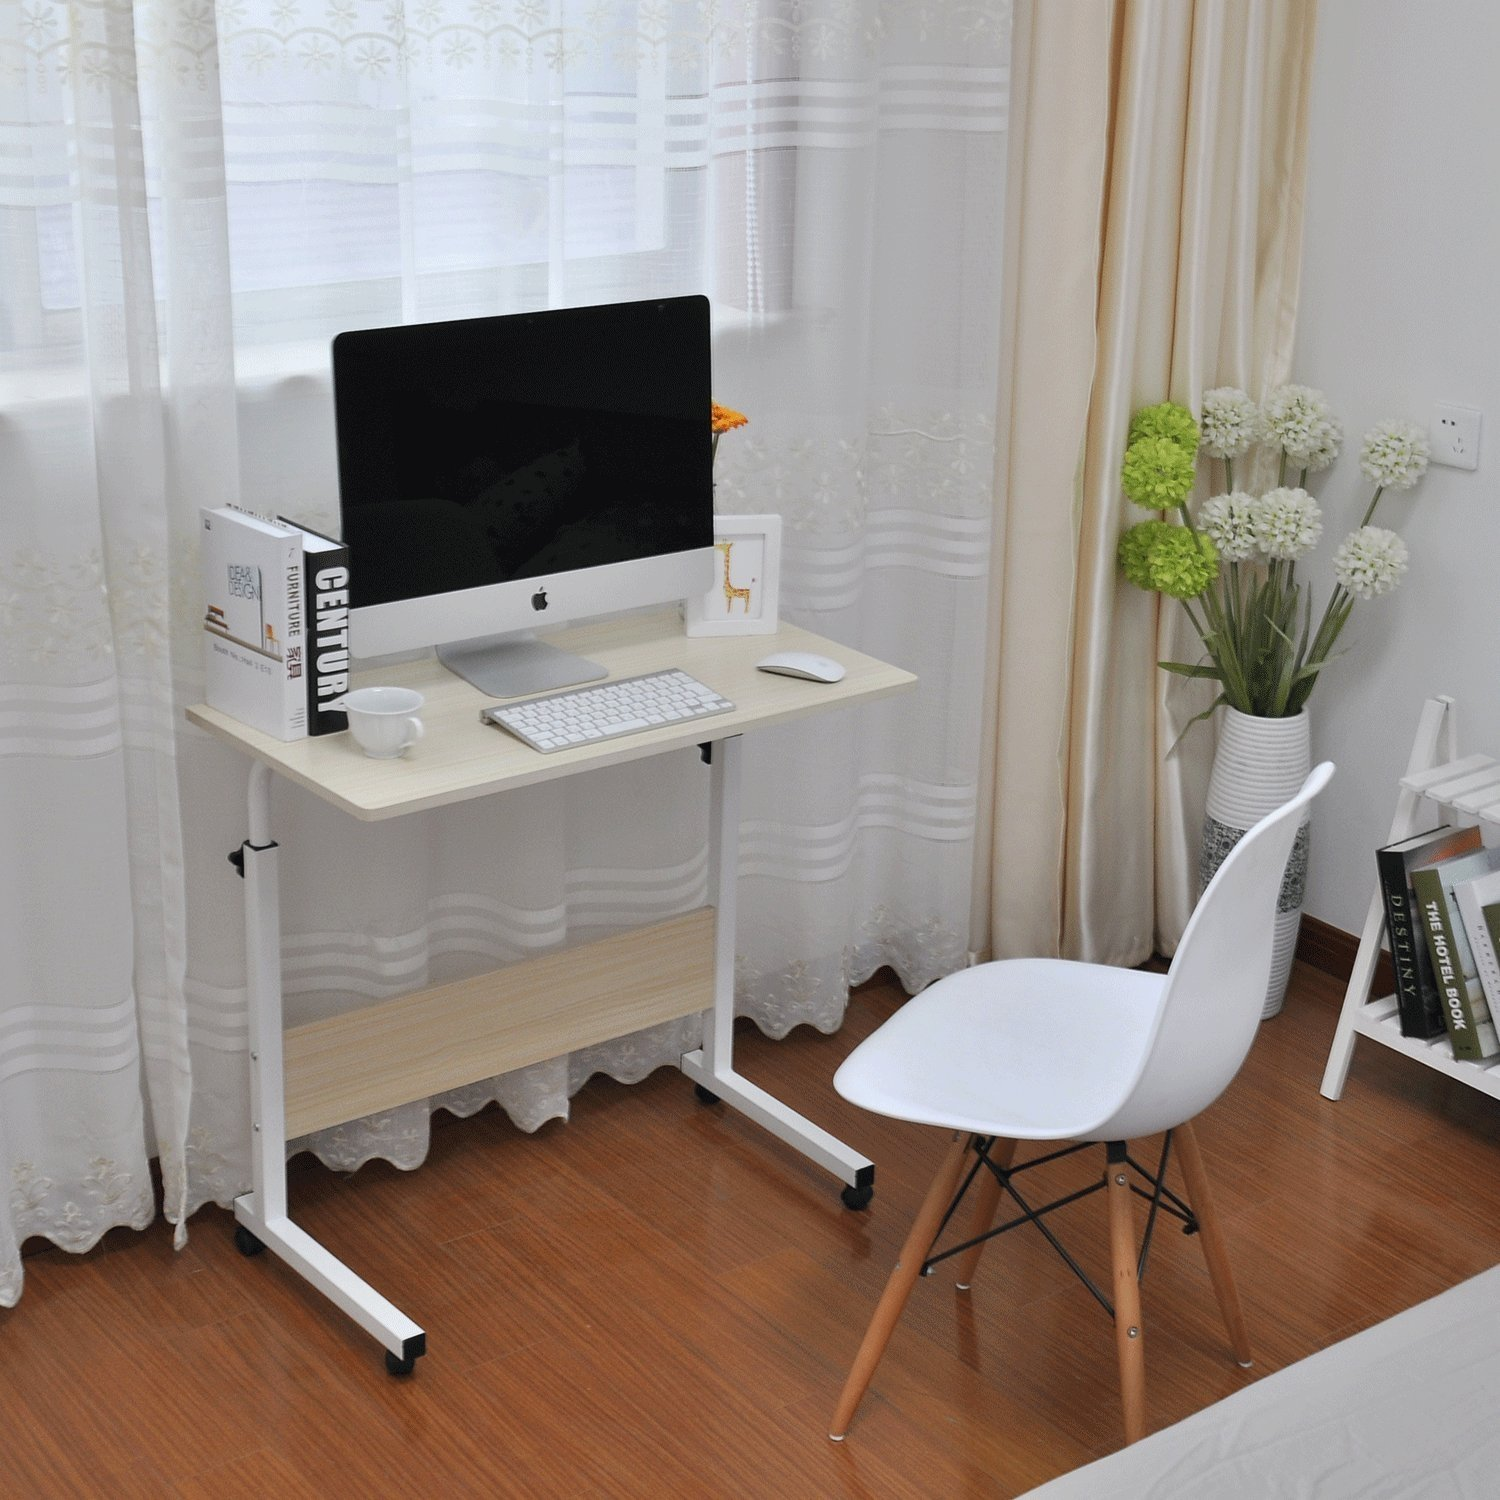 Computer Table with Wheels Singapore SingaporeHomeFurniture